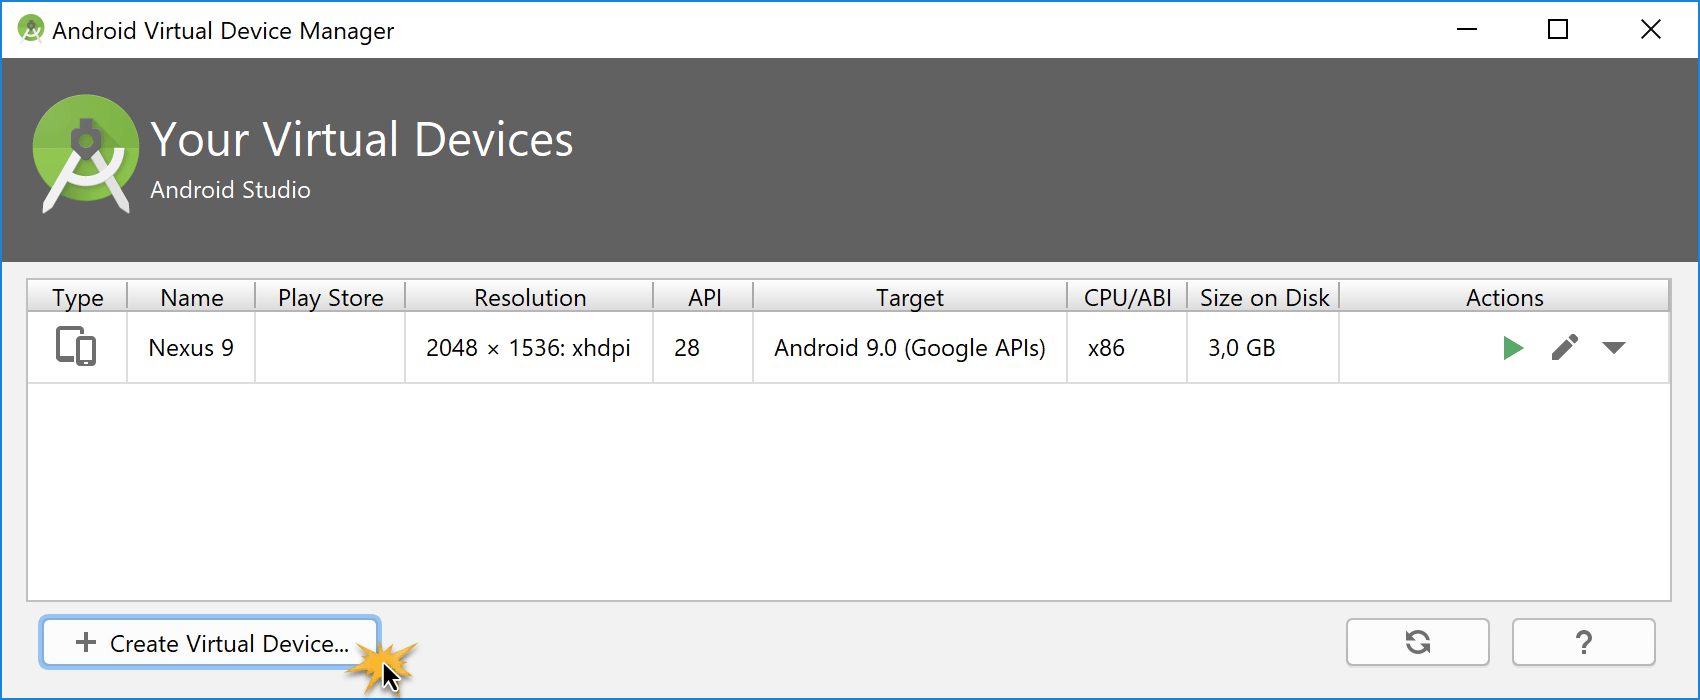 your_virtual_devices_dialog